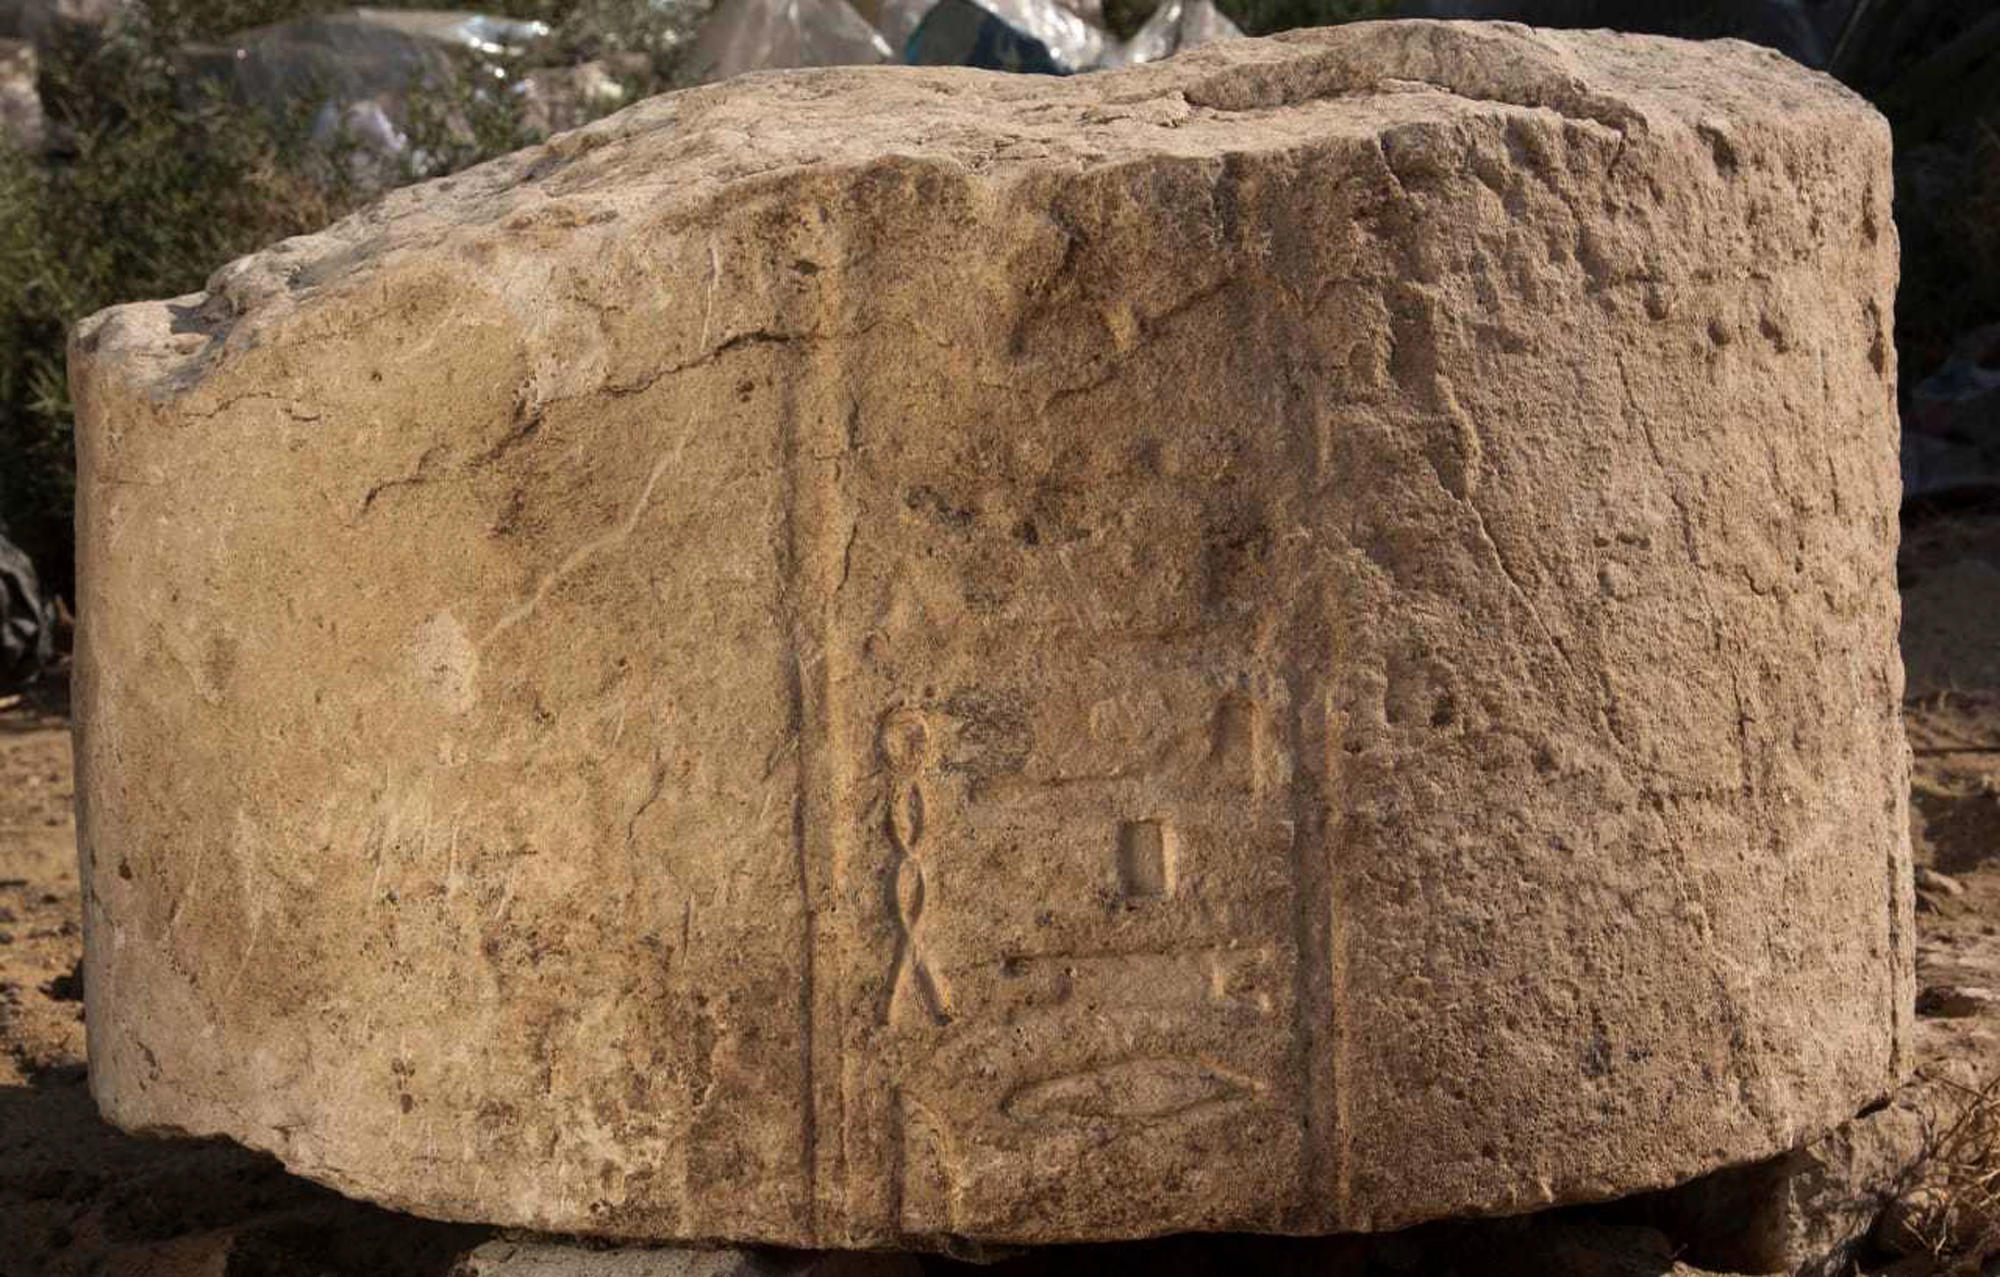 This undated photo released by the Egyptian Ministry of Antiquities, shows part of a stone slab tht was discovered at a dig in eastern Cairo's Matariya neighborhood, Egypt. The Antiquities Ministry said on Tuesday, Nov. 6, 2018, that archeologists working at the dig have found several fragments of stone slabs with inscriptions dating back up to 4,000 years. Some of the fragments date back to the 12th and the 20th Dynasties and the Third Intermediate Period while others are more recent. (Egyptian Ministry of Antiquities via AP)